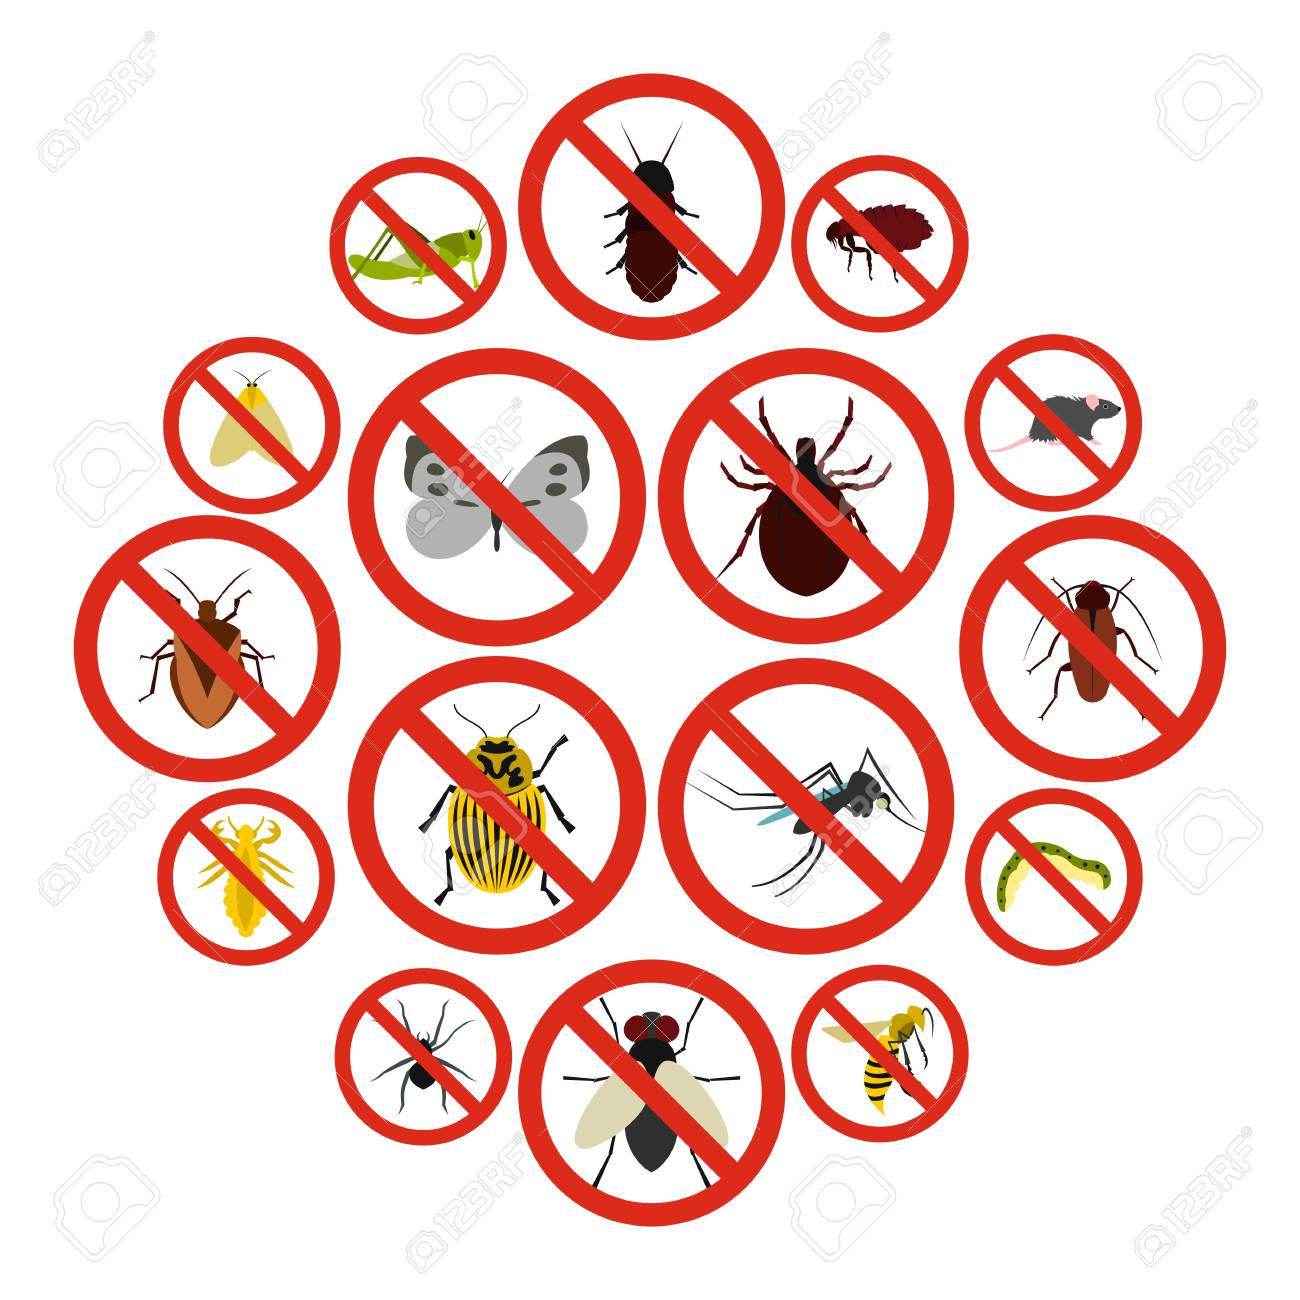 Flat no insect sign icons set. Universal no insect sign icons to use for web and mobile UI, set of basic no insect sign elements isolated vector illustration - 100065638